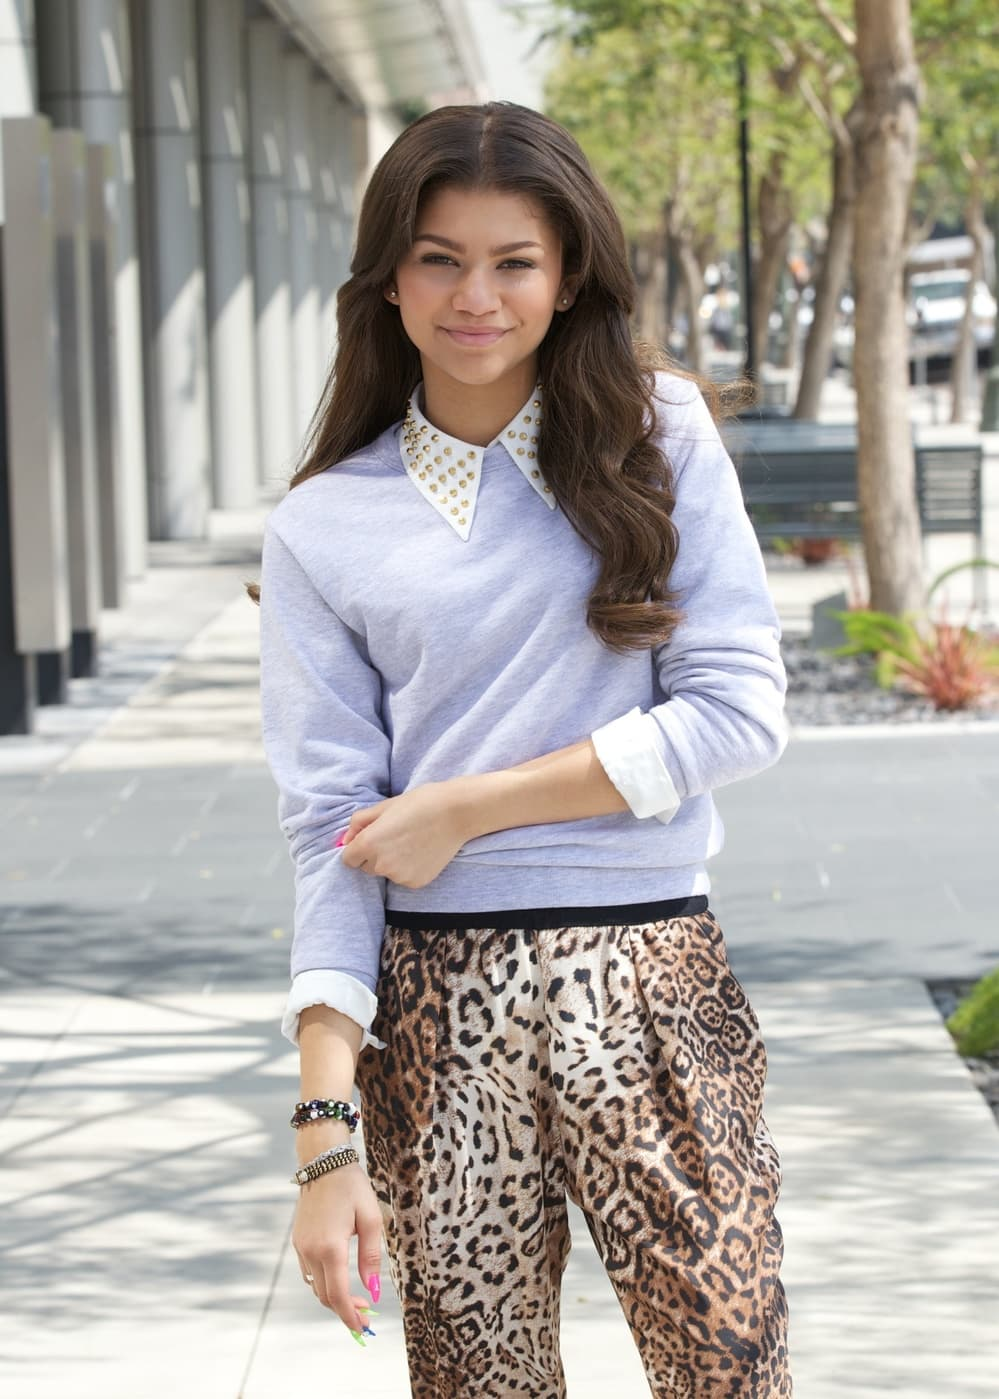 Zendaya in 2013, leopard print pants and collared sweater.